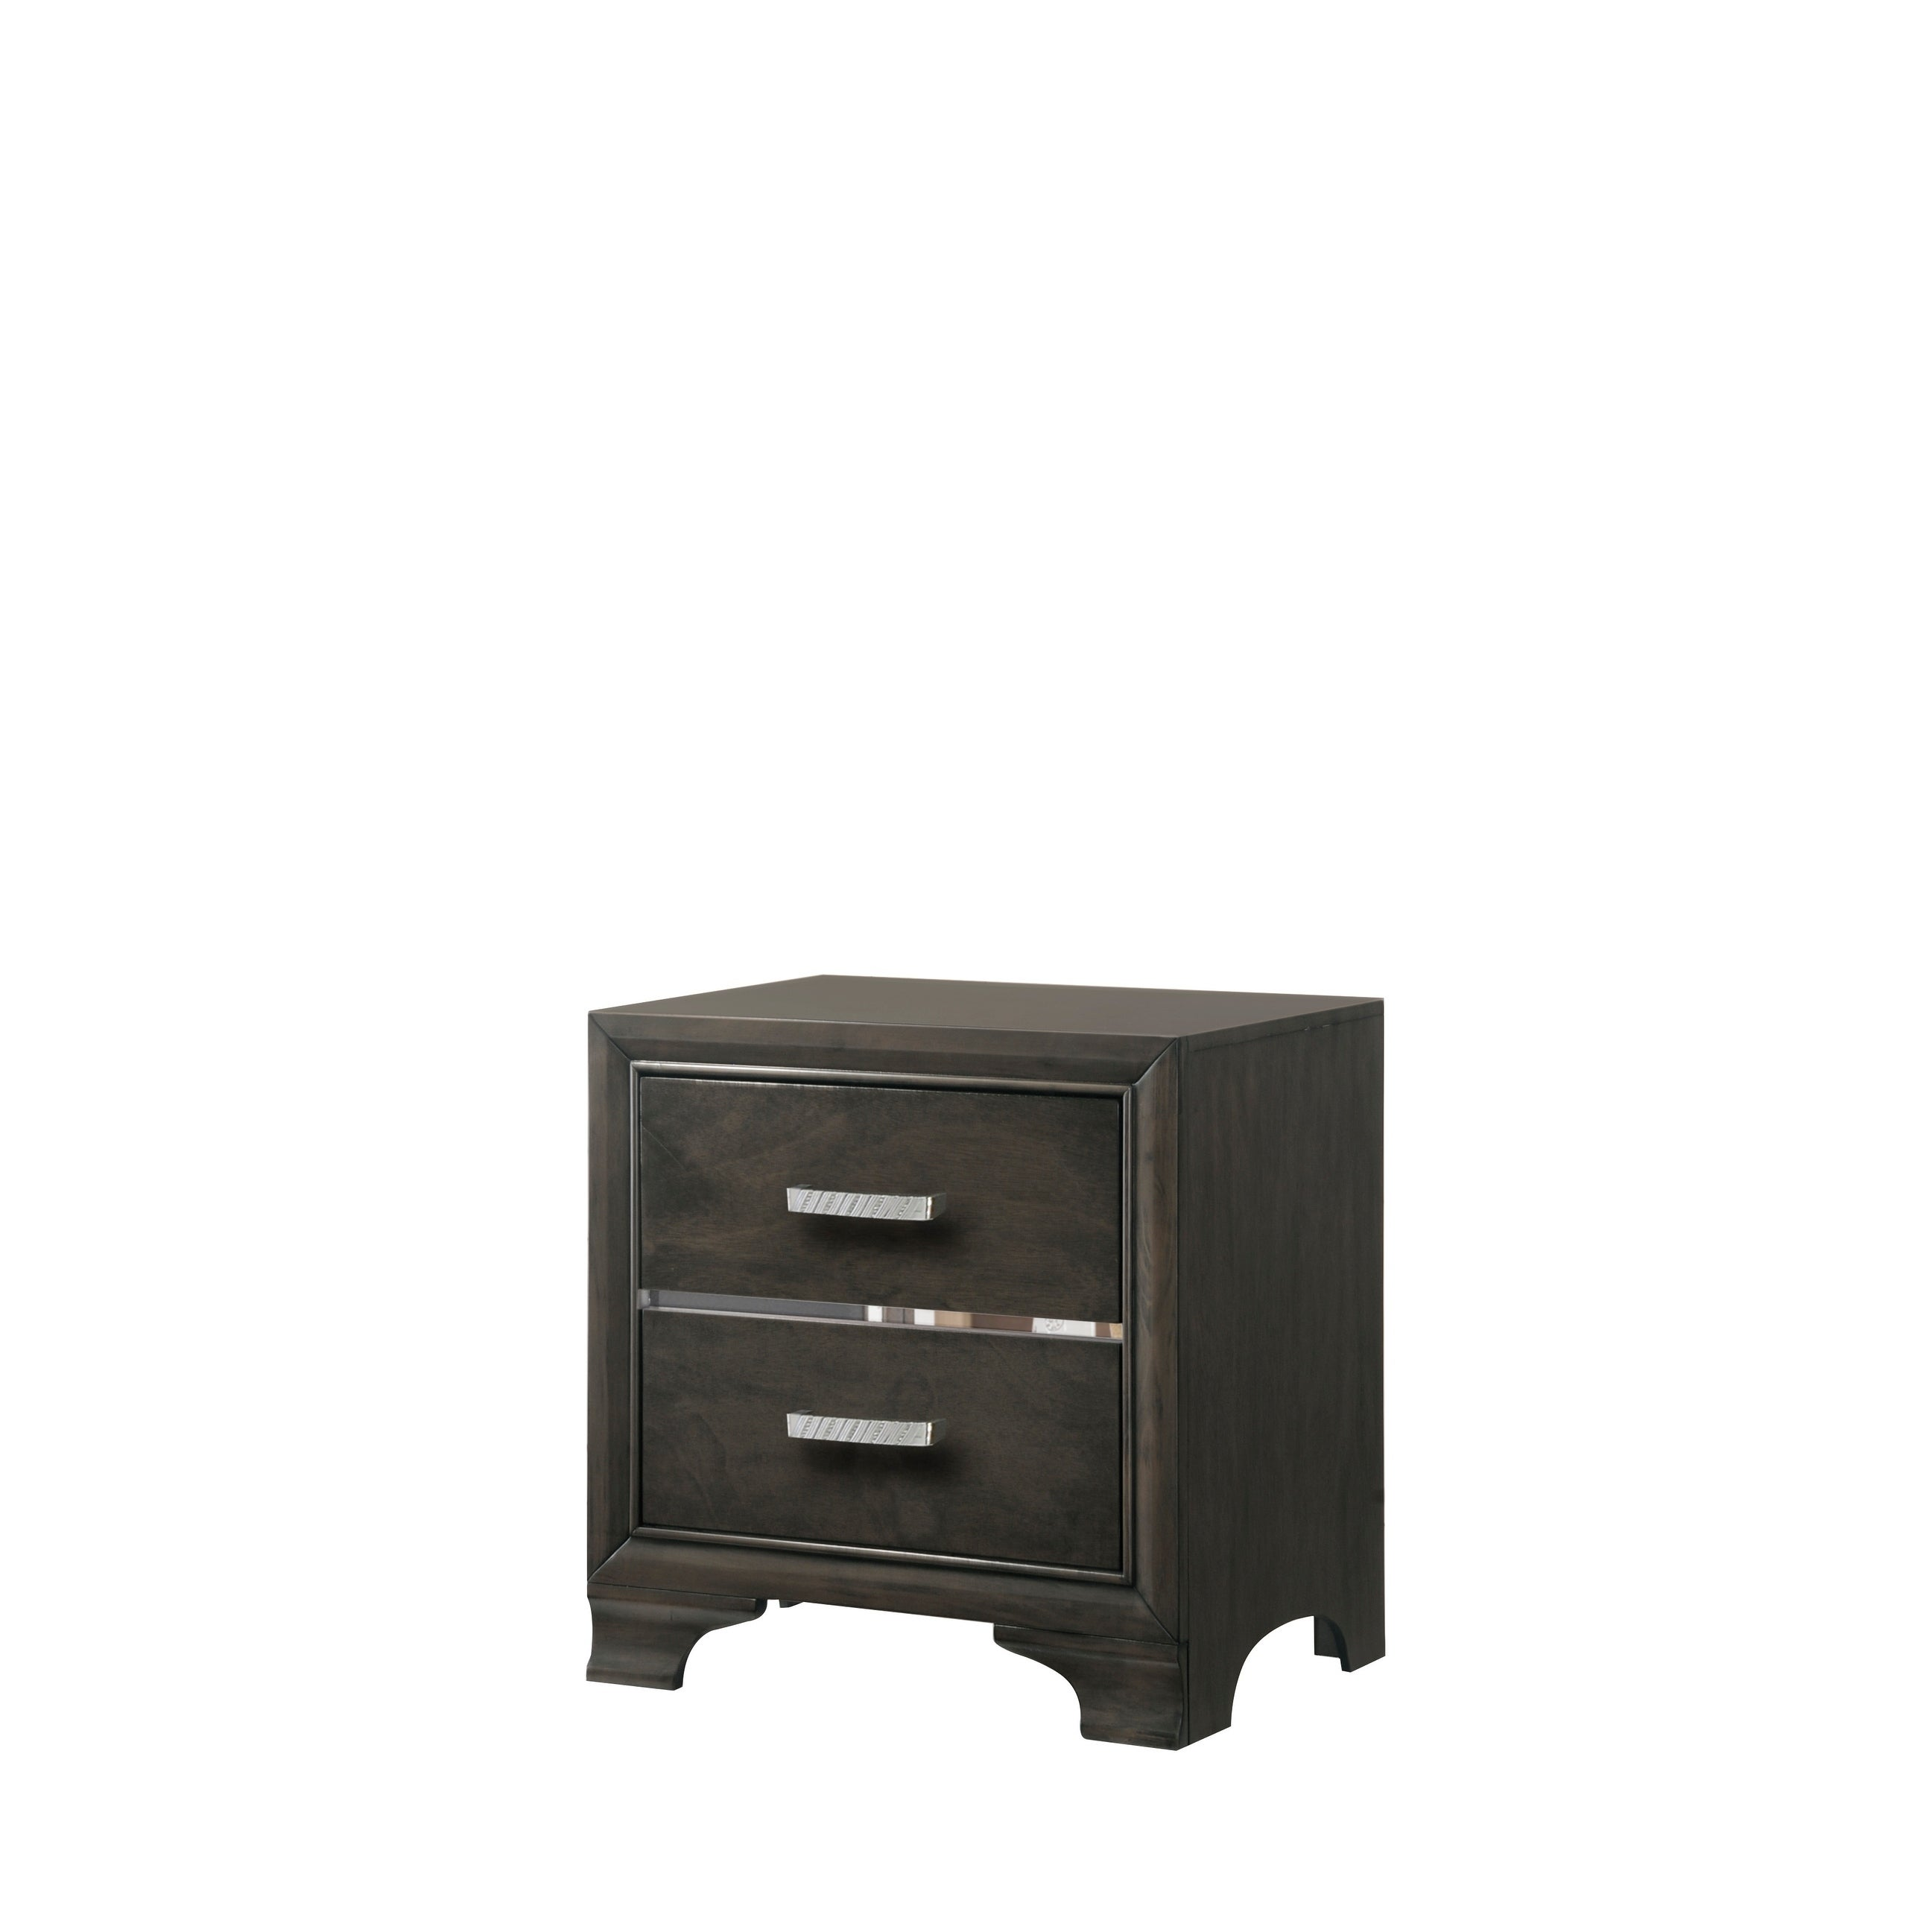 Paxton 2 Drawer Night Stand In Light Grey Finish